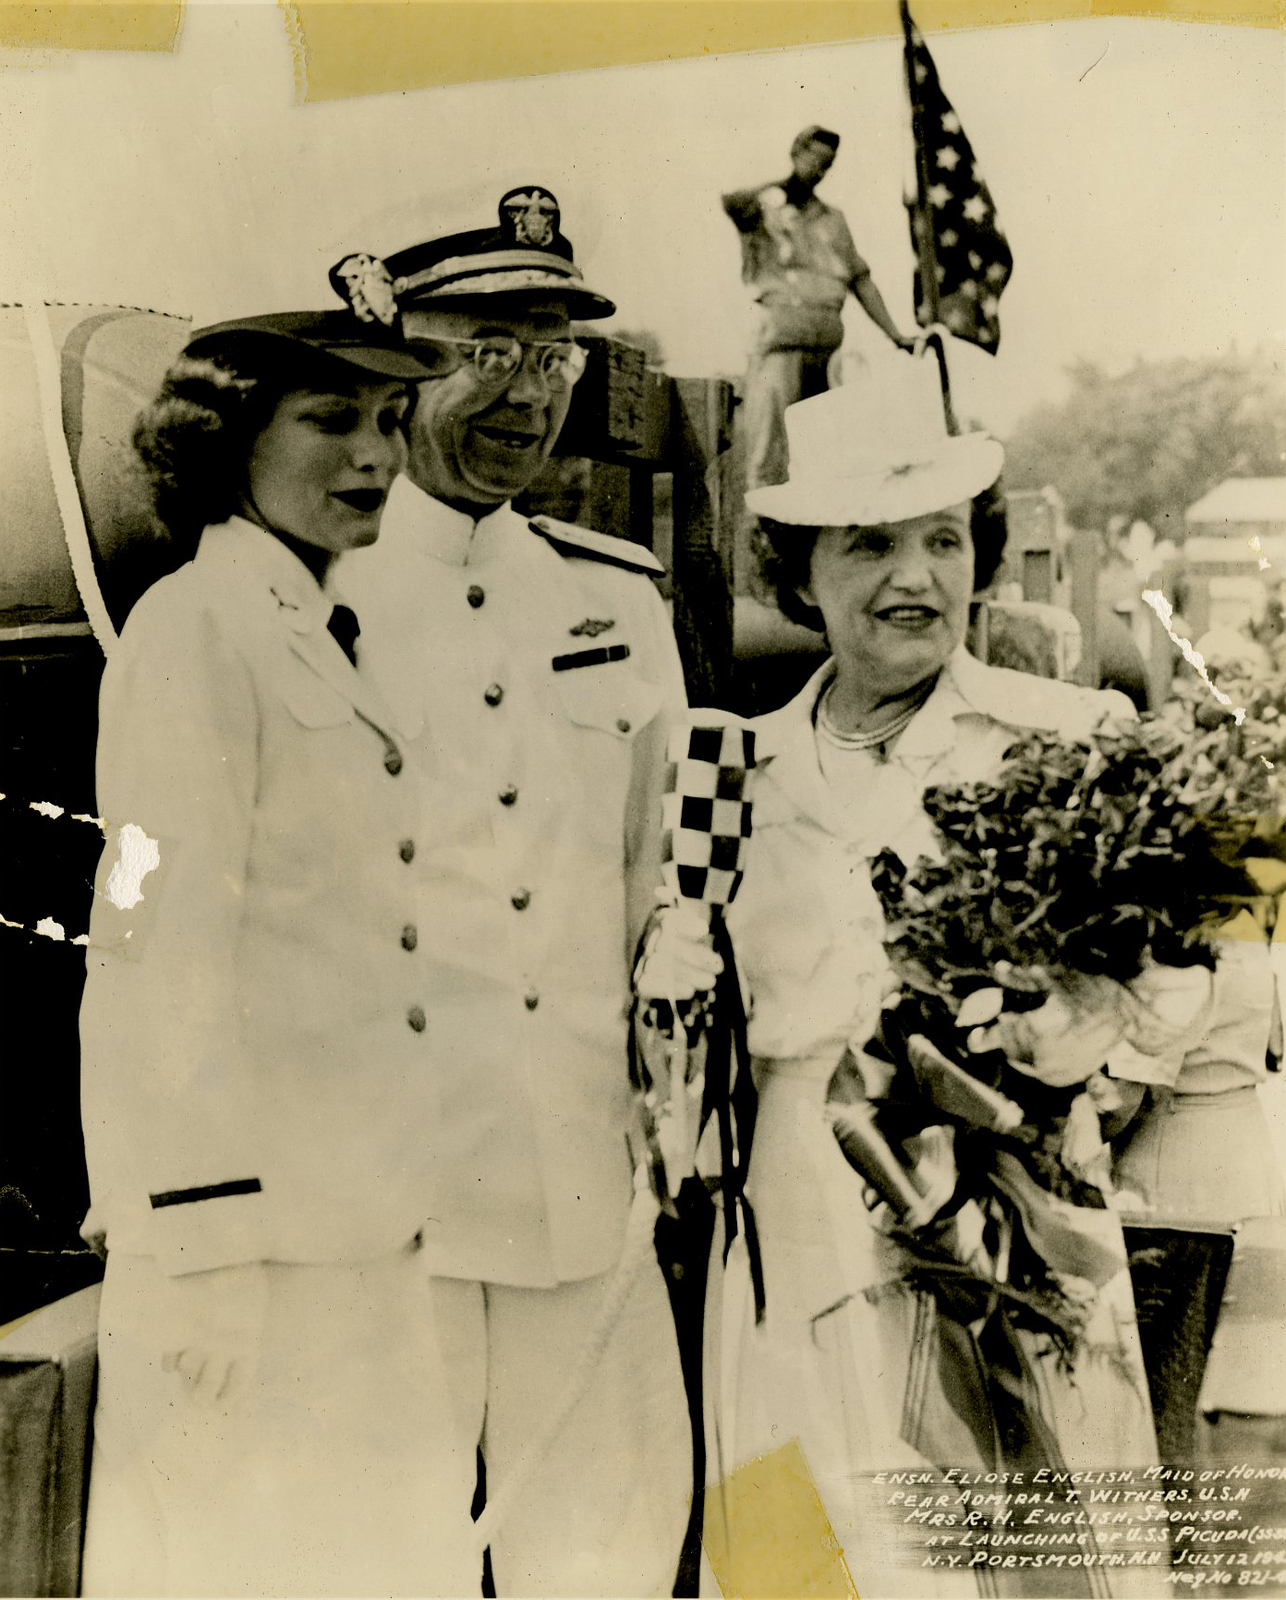 Ensign Eliose English, Rear Admiral T. Withers, and Mrs. R. N. English at the Launching of the USS Picuda